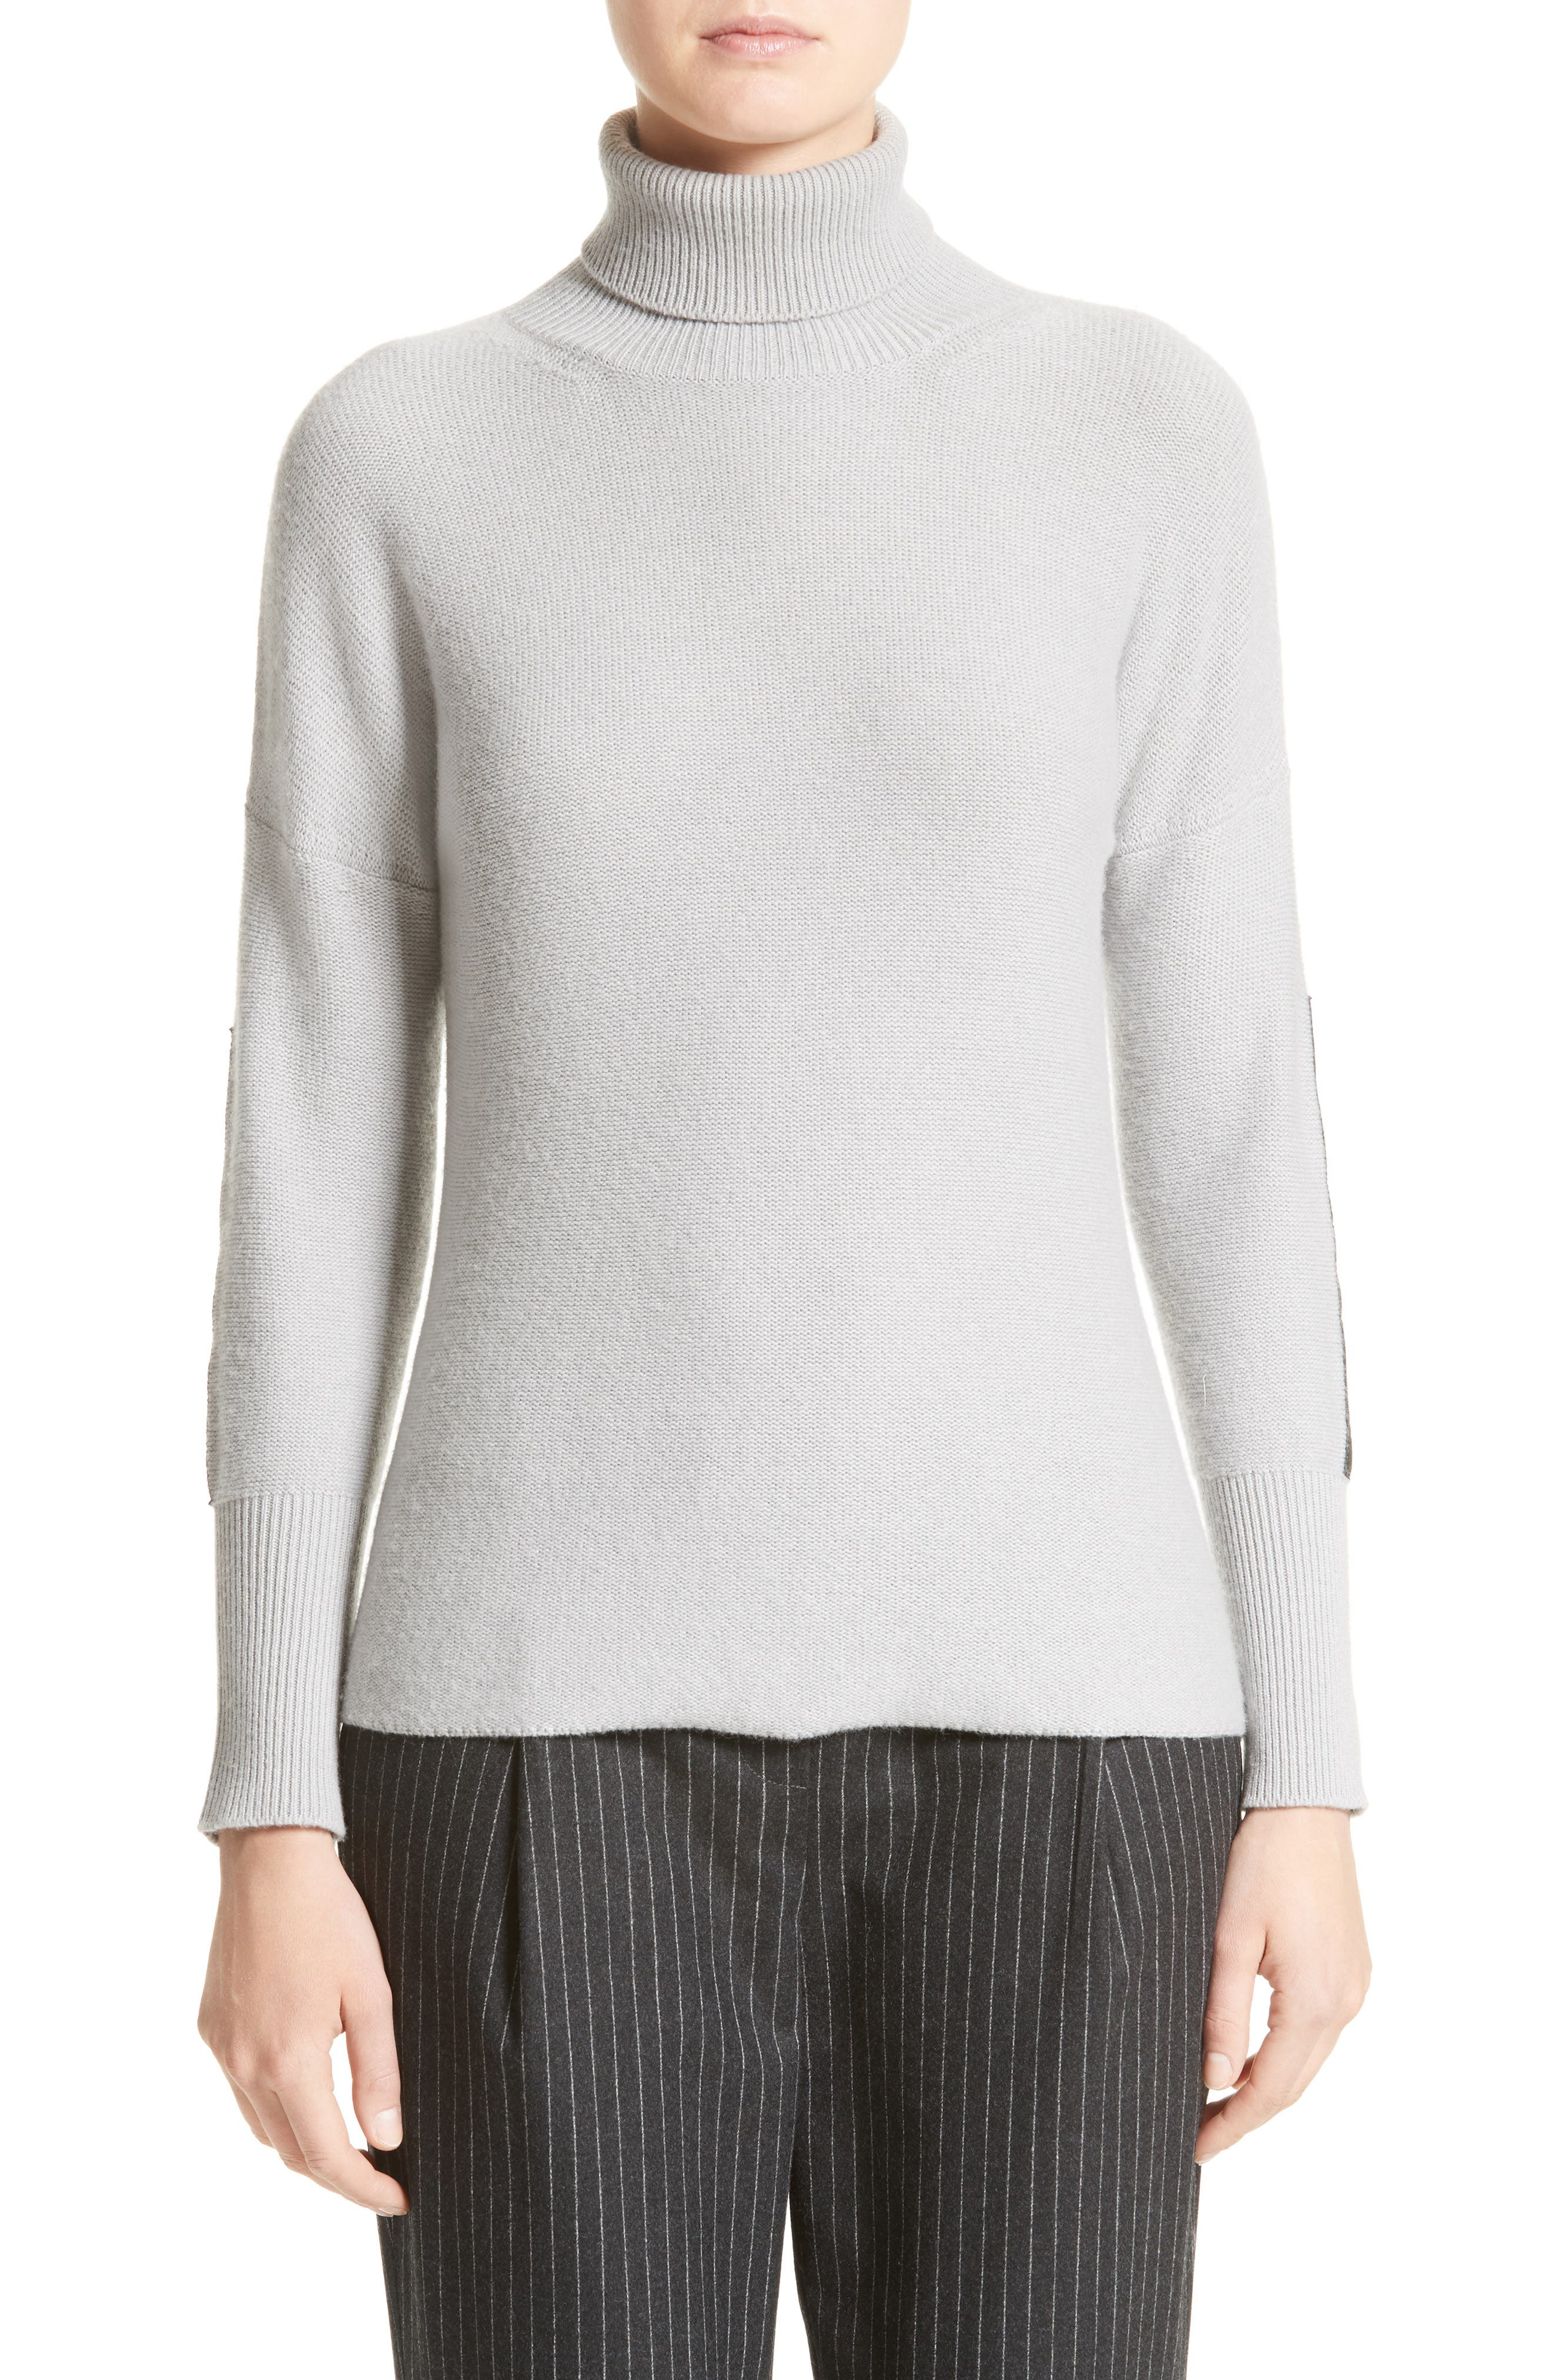 Alternate Image 1 Selected - Fabiana Filippi Wool, Silk & Cashmere Knit Turtleneck